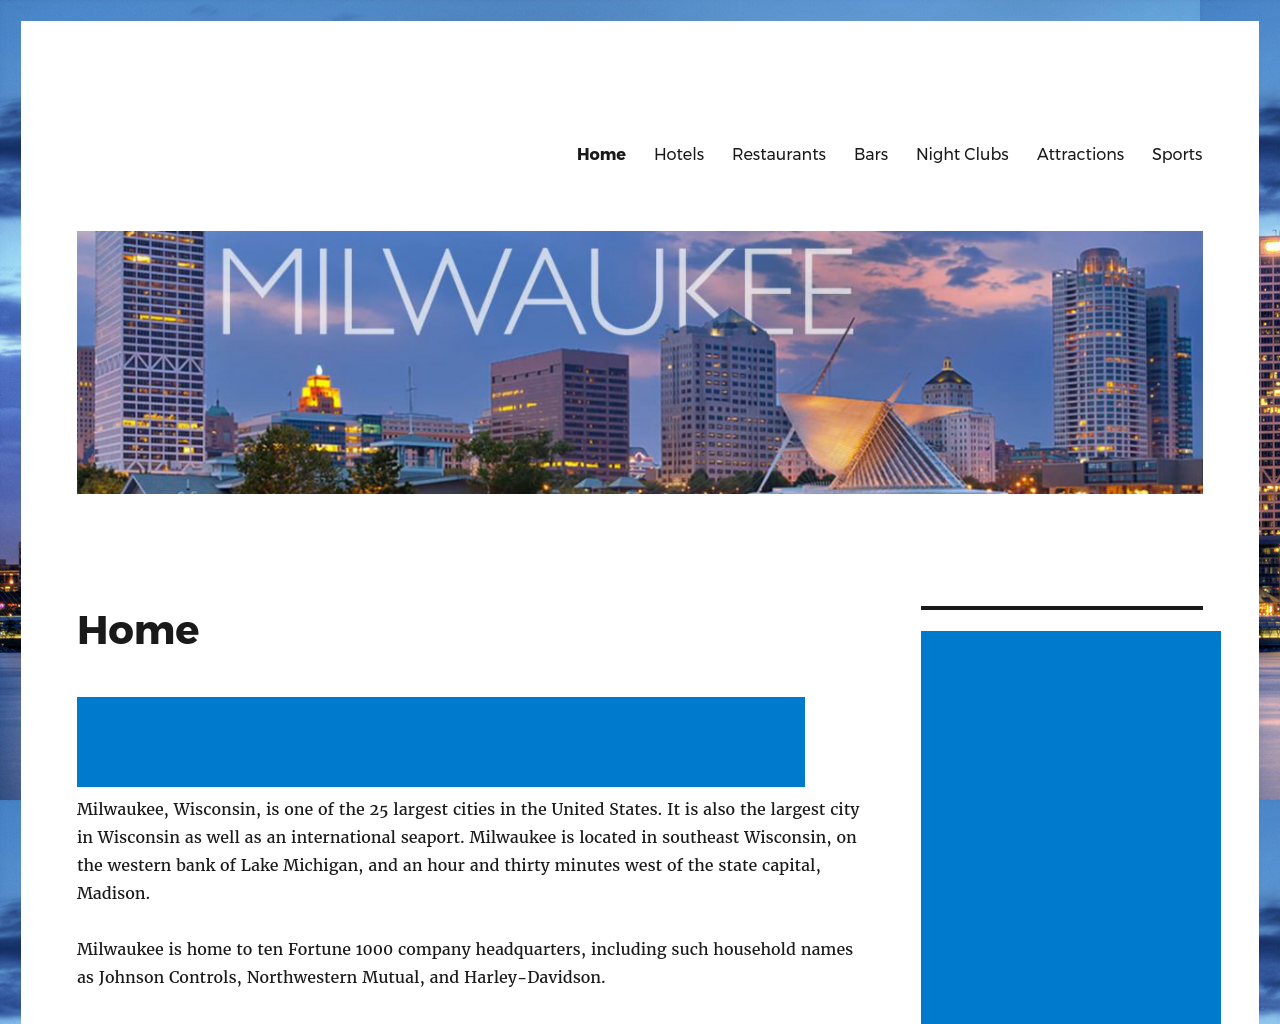 Milwaukee-NightLife-Media-Advertising-Reviews-Pricing